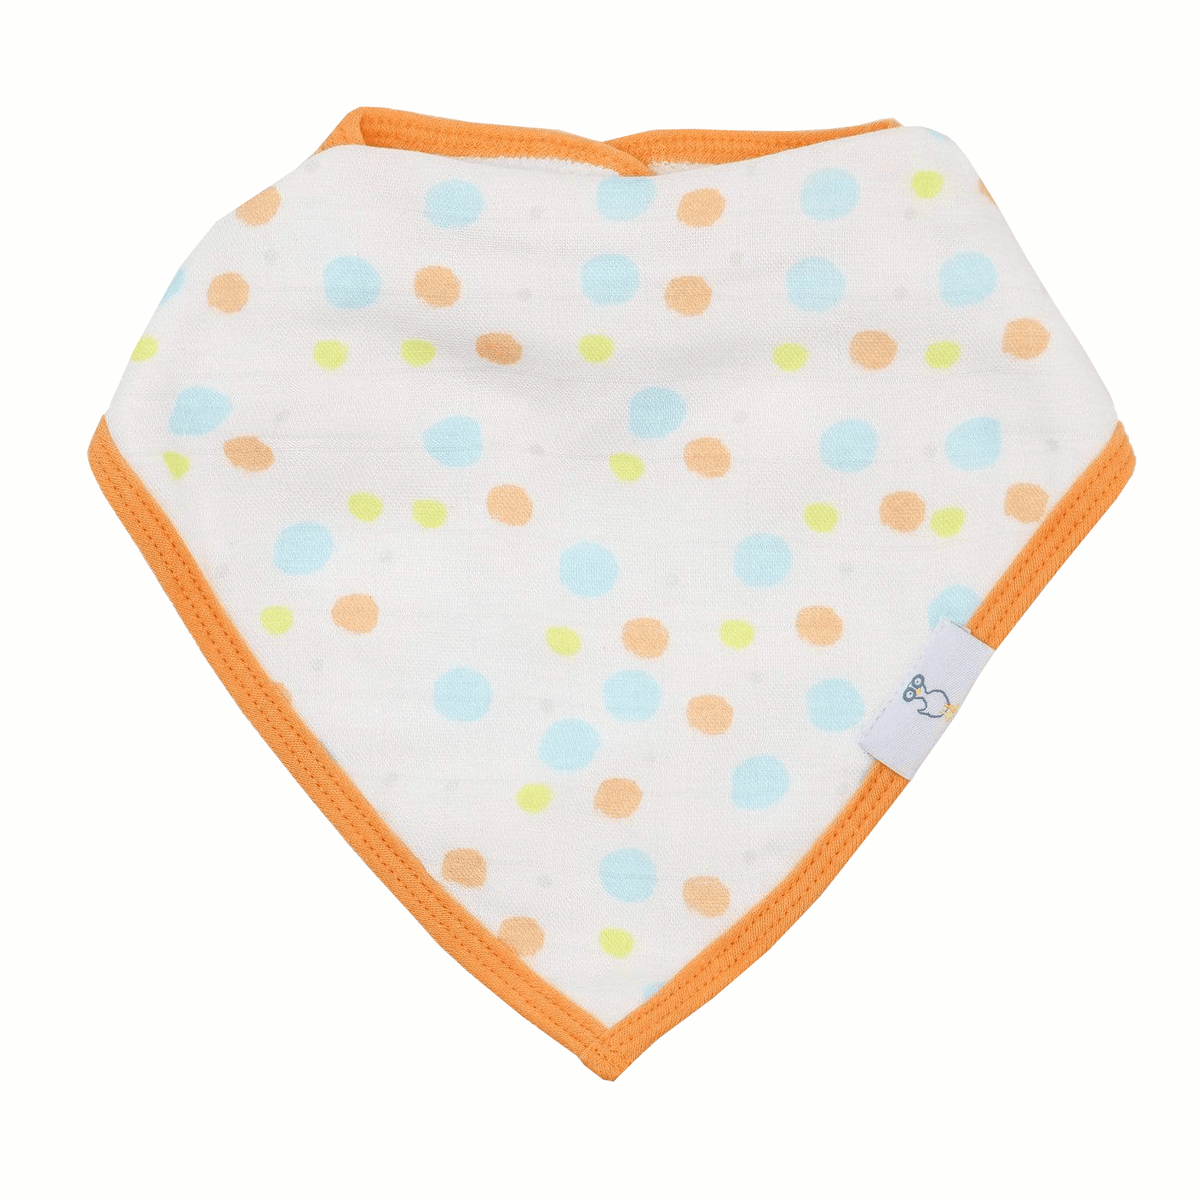 2 PK Muslin & Terry Cloth Bib Set Circles/Trains - GooseWaddle